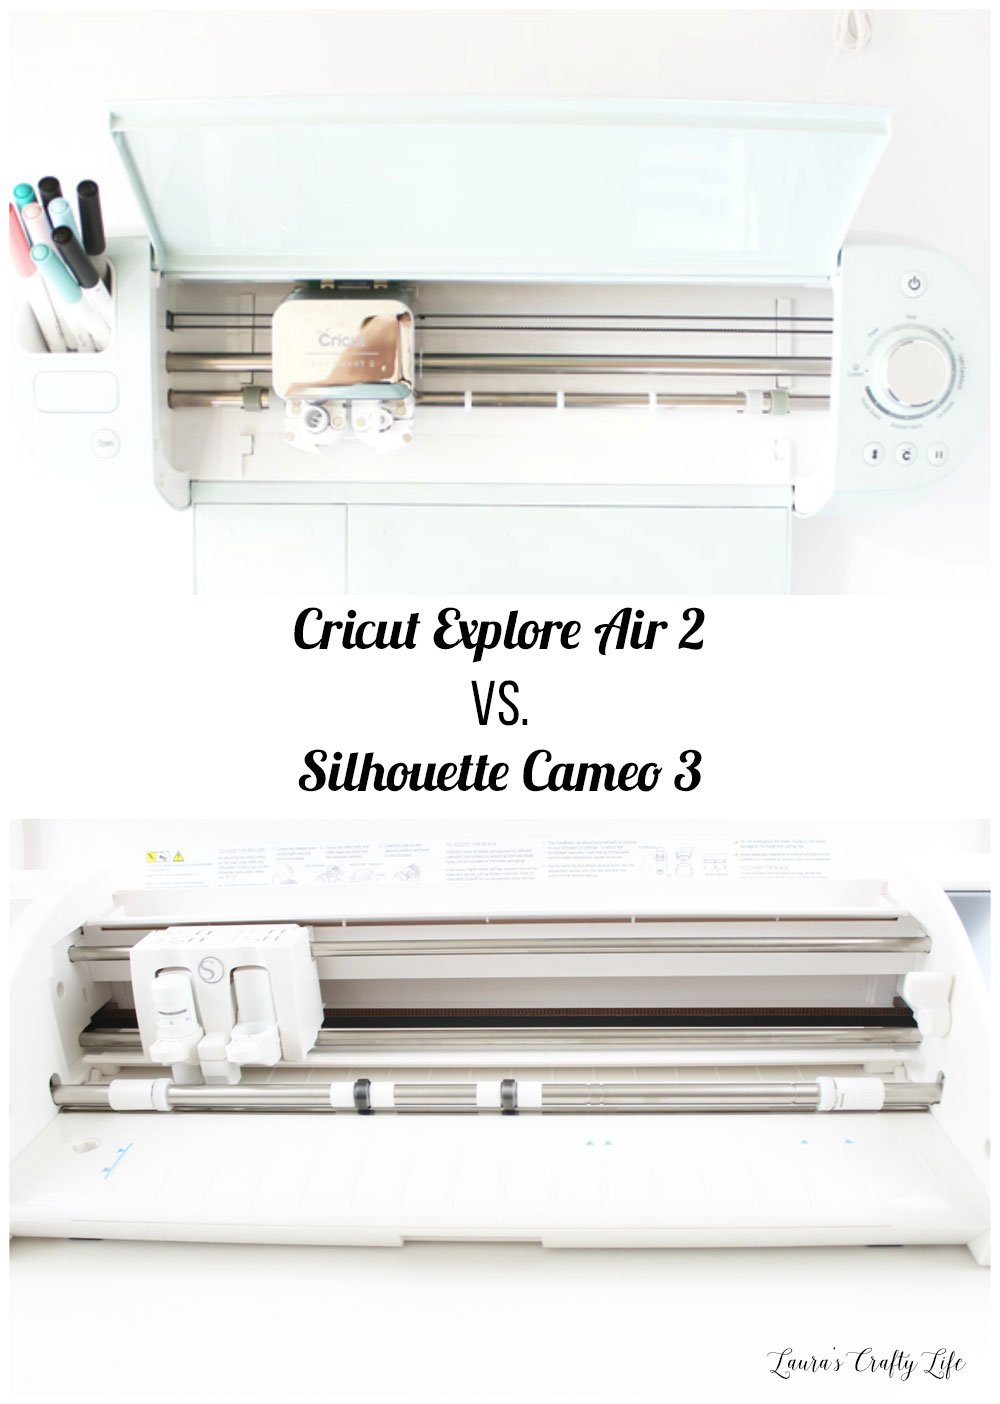 Cricut Explore Air 2 vs. Silhouette Cameo 3